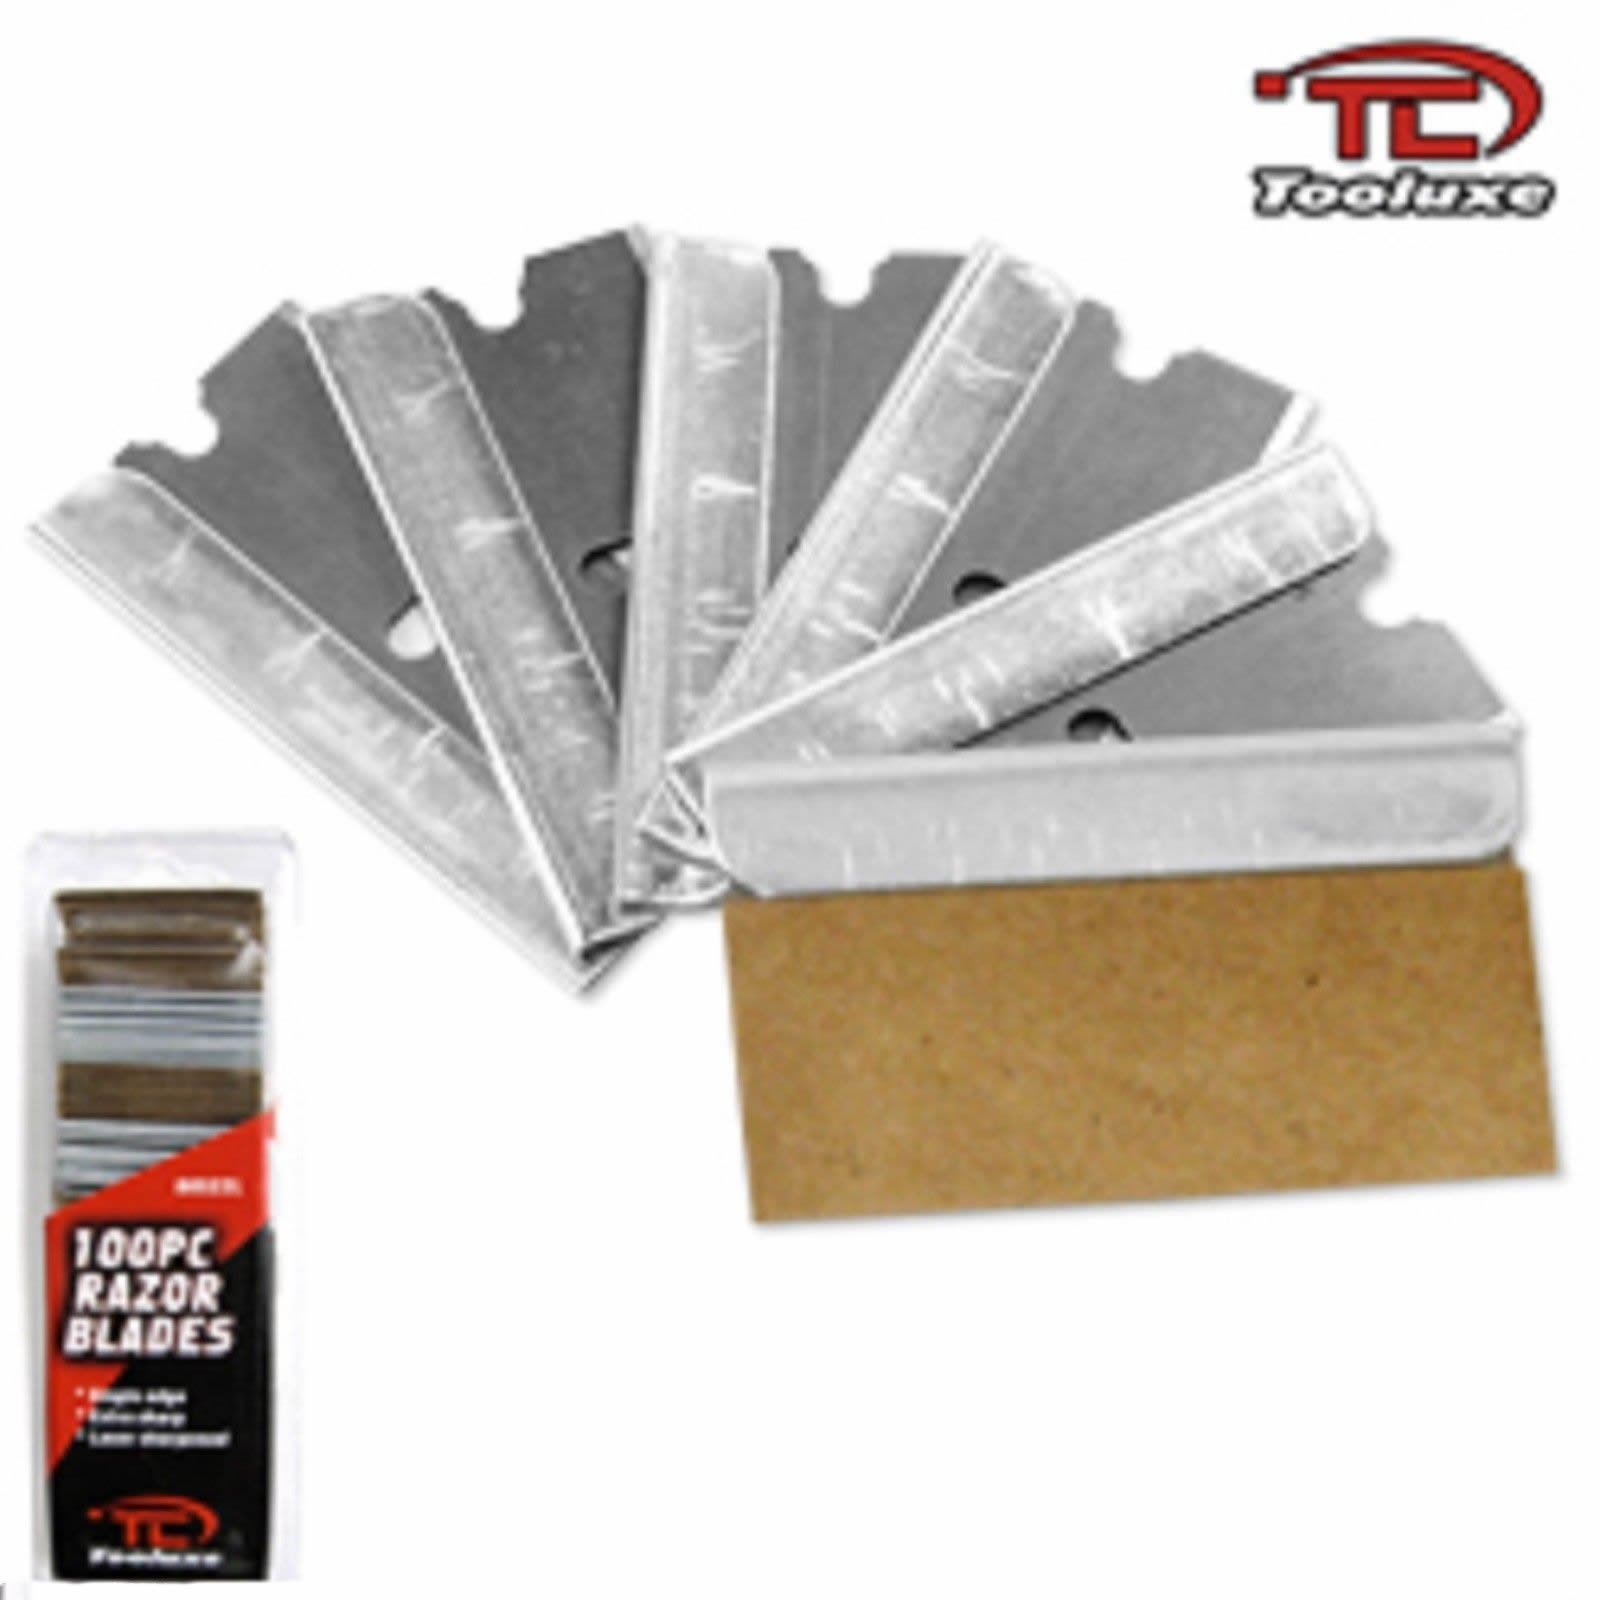 1;000 Piece Razor Blades 1000 Single Edge Cutters 10 New Packs of 100 Wholesale